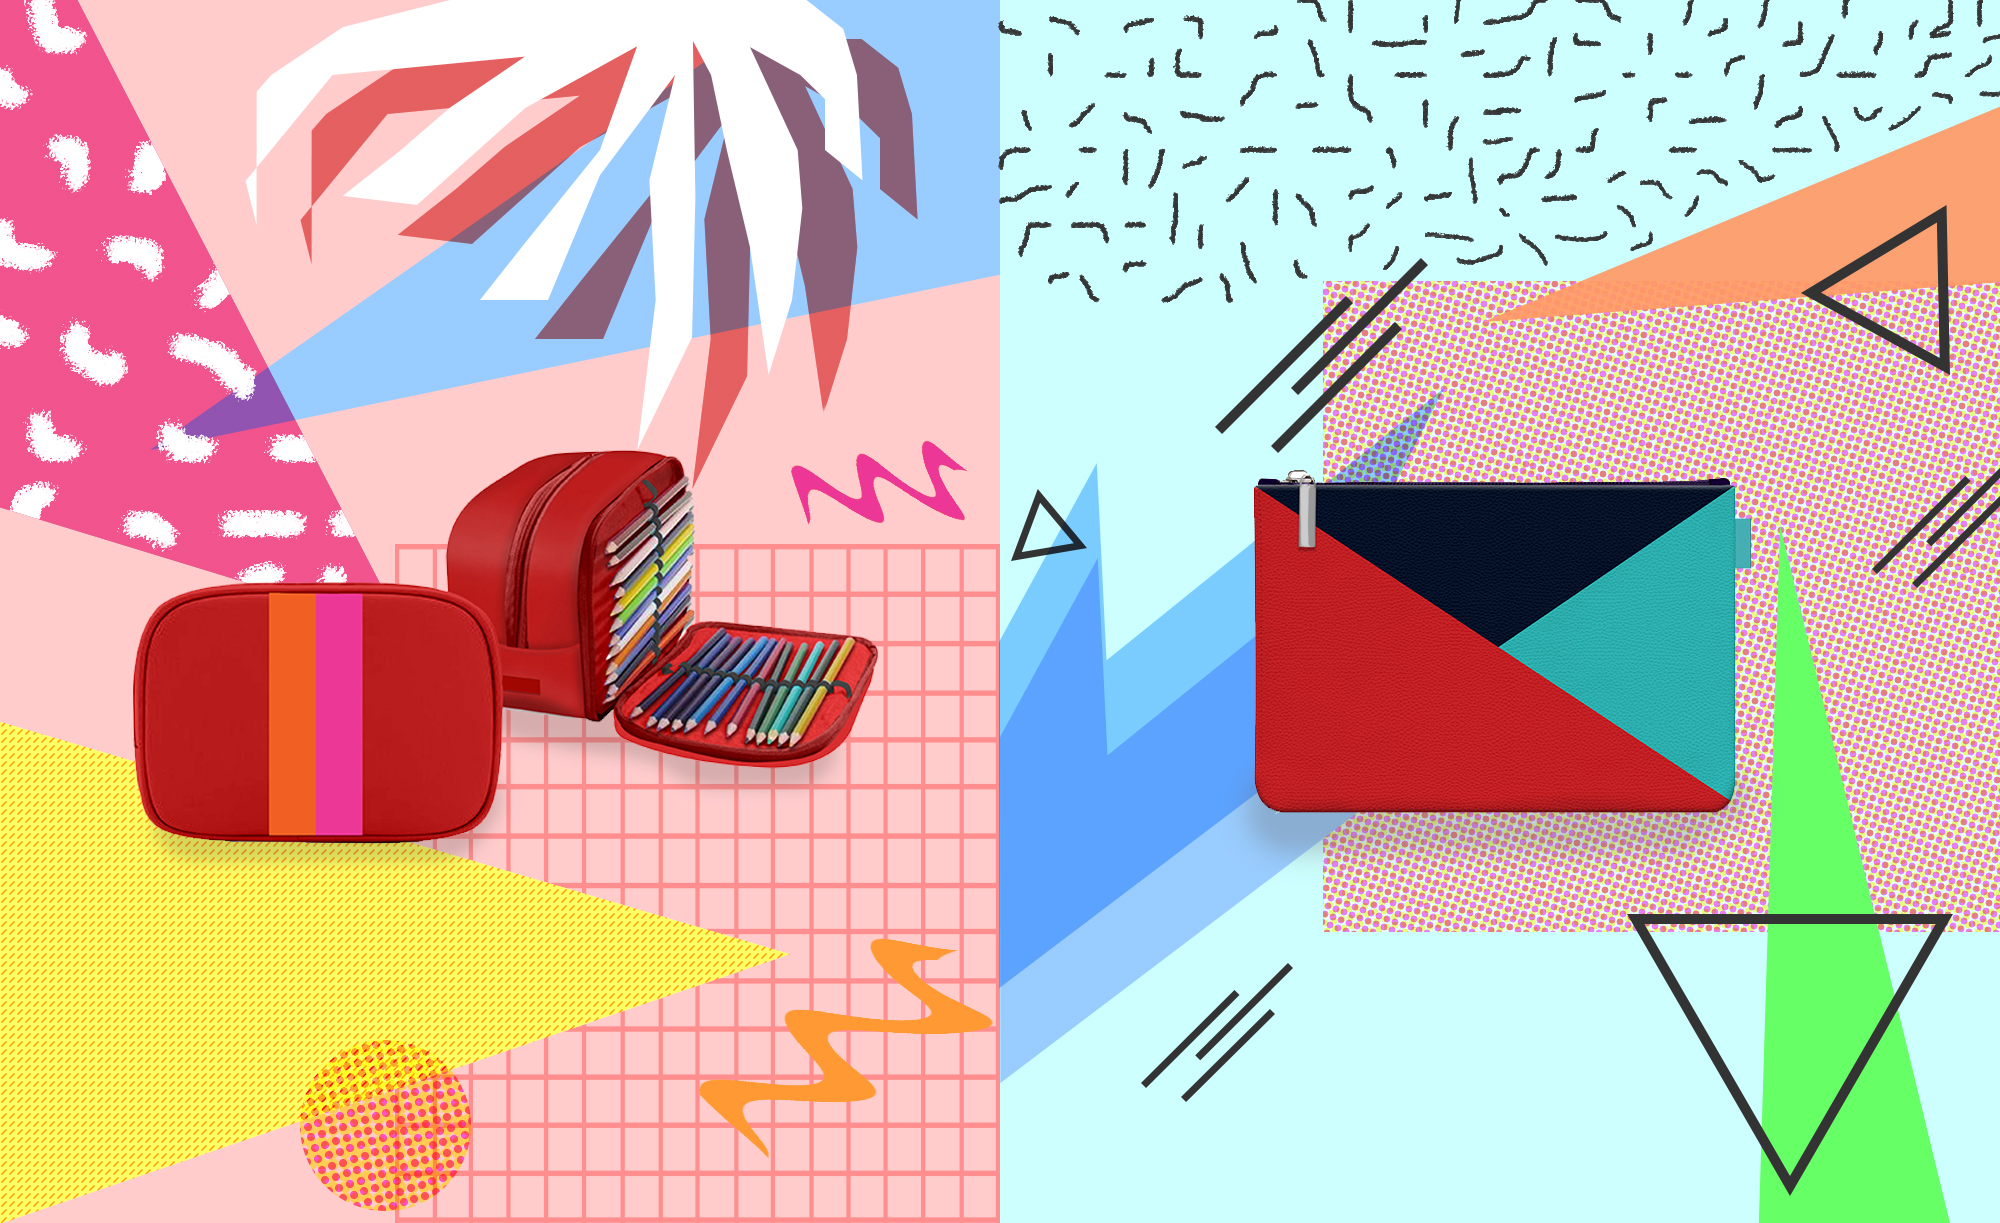 Left: Color block pencil case dopp kit, Right: Geometric flat pouch